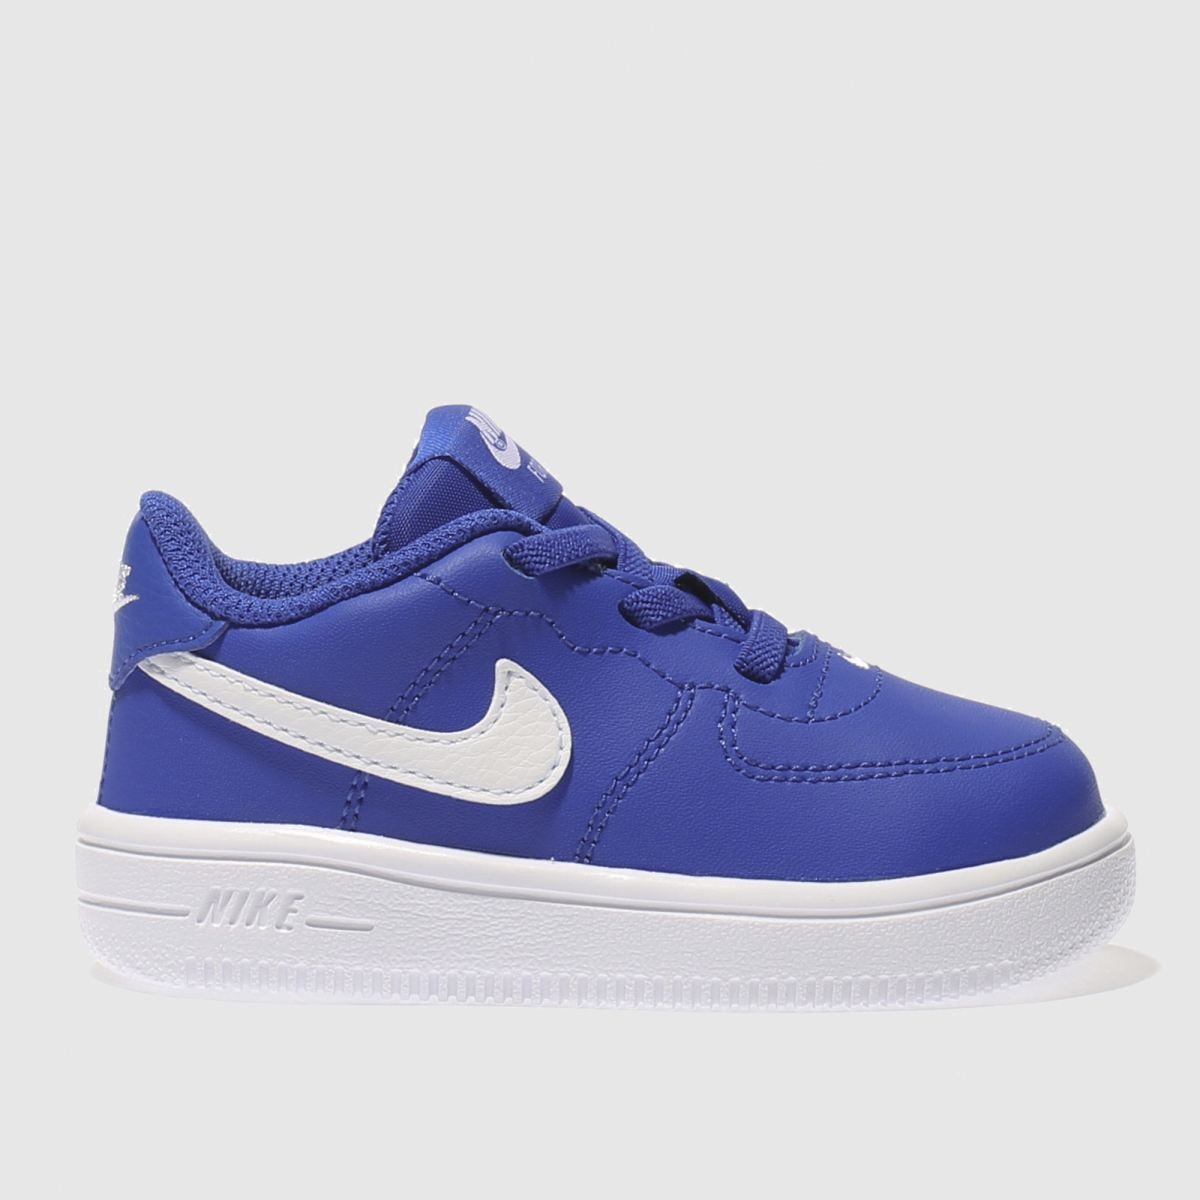 nike blue force 1 18 bt Boys Toddler Trainers